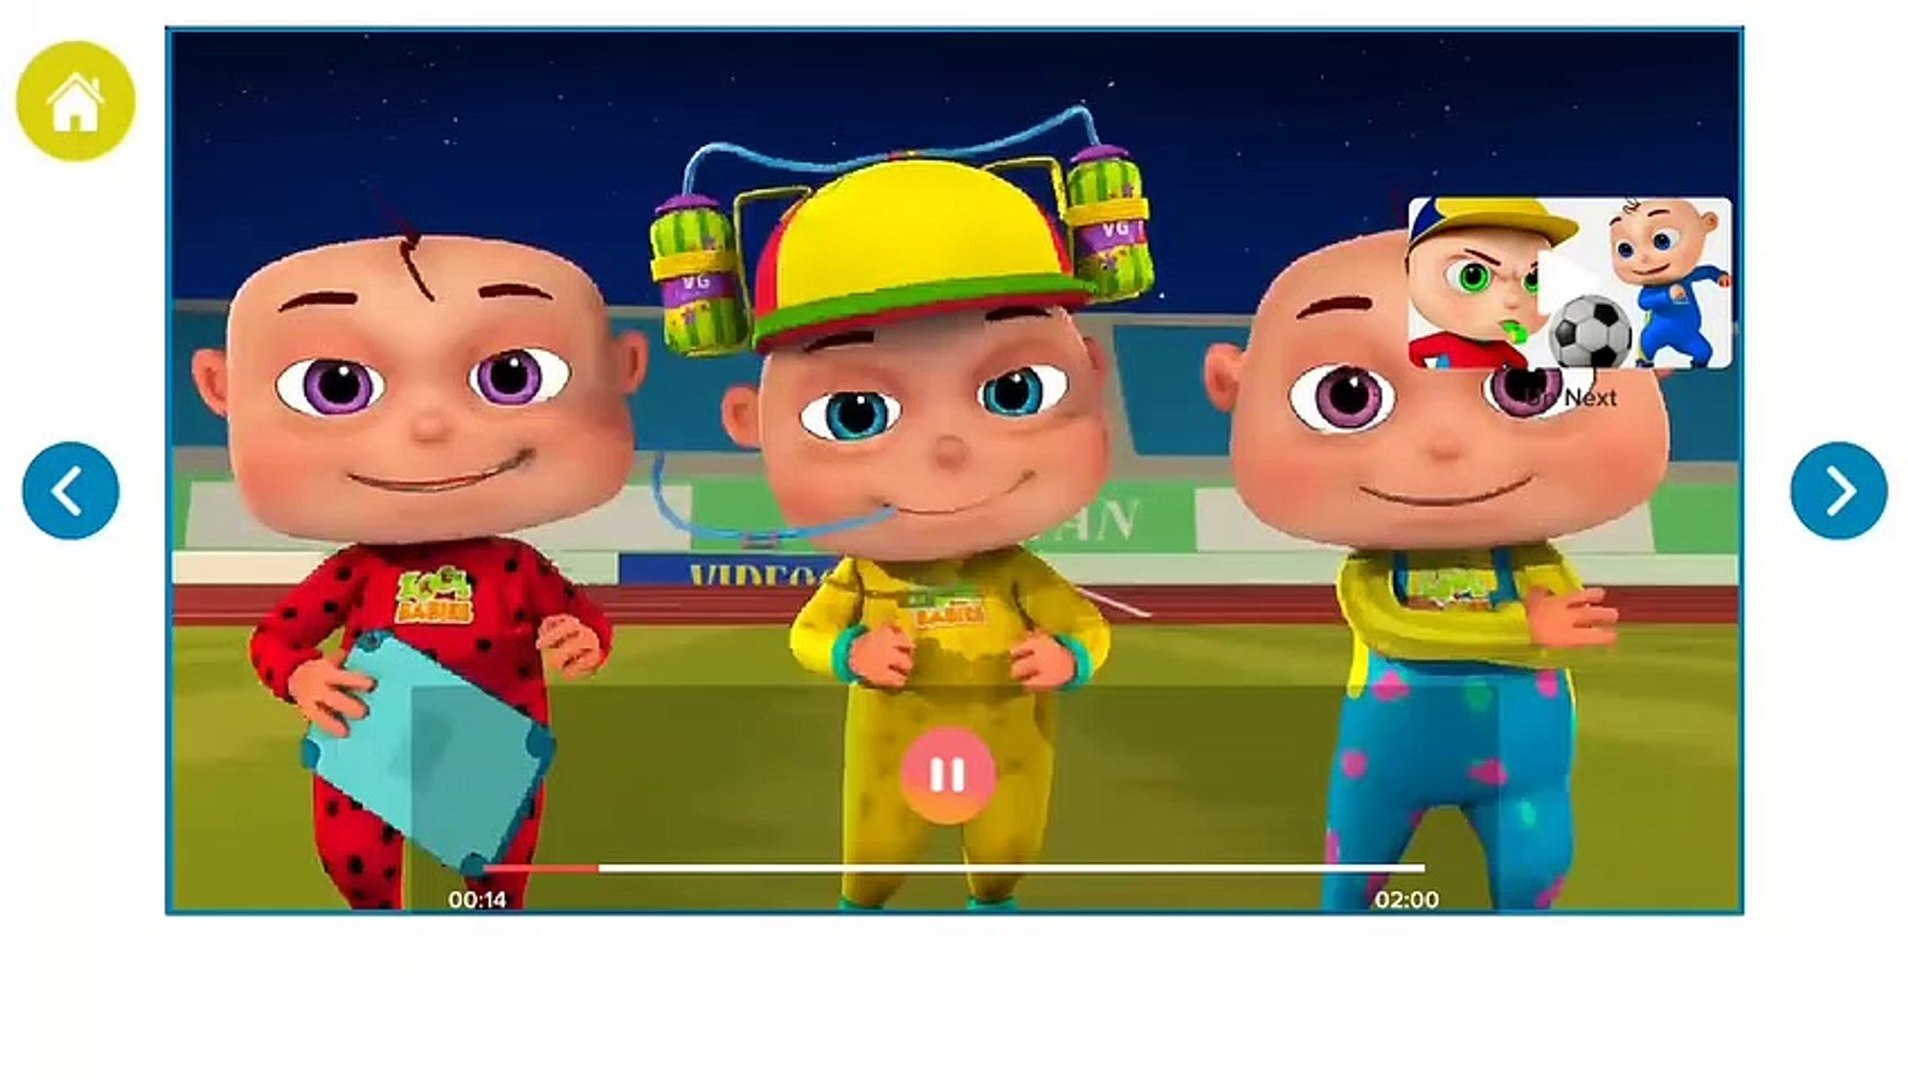 Kids Soccer Playing //animated video games //for kids